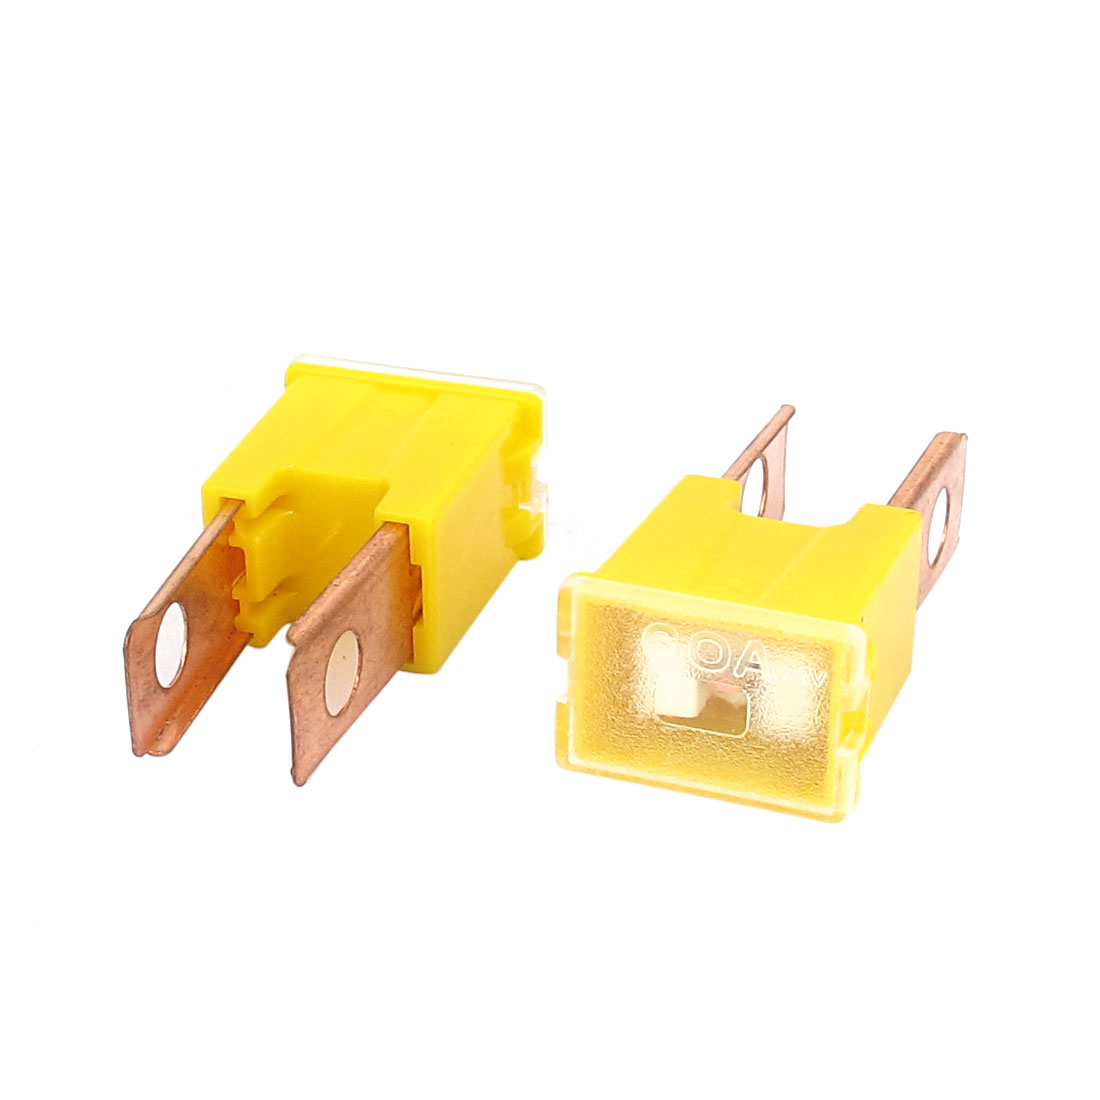 Auto Car 60A 32V Male PAL 2 Straight Blade Slow Blow Fuse Yellow 2Pcs